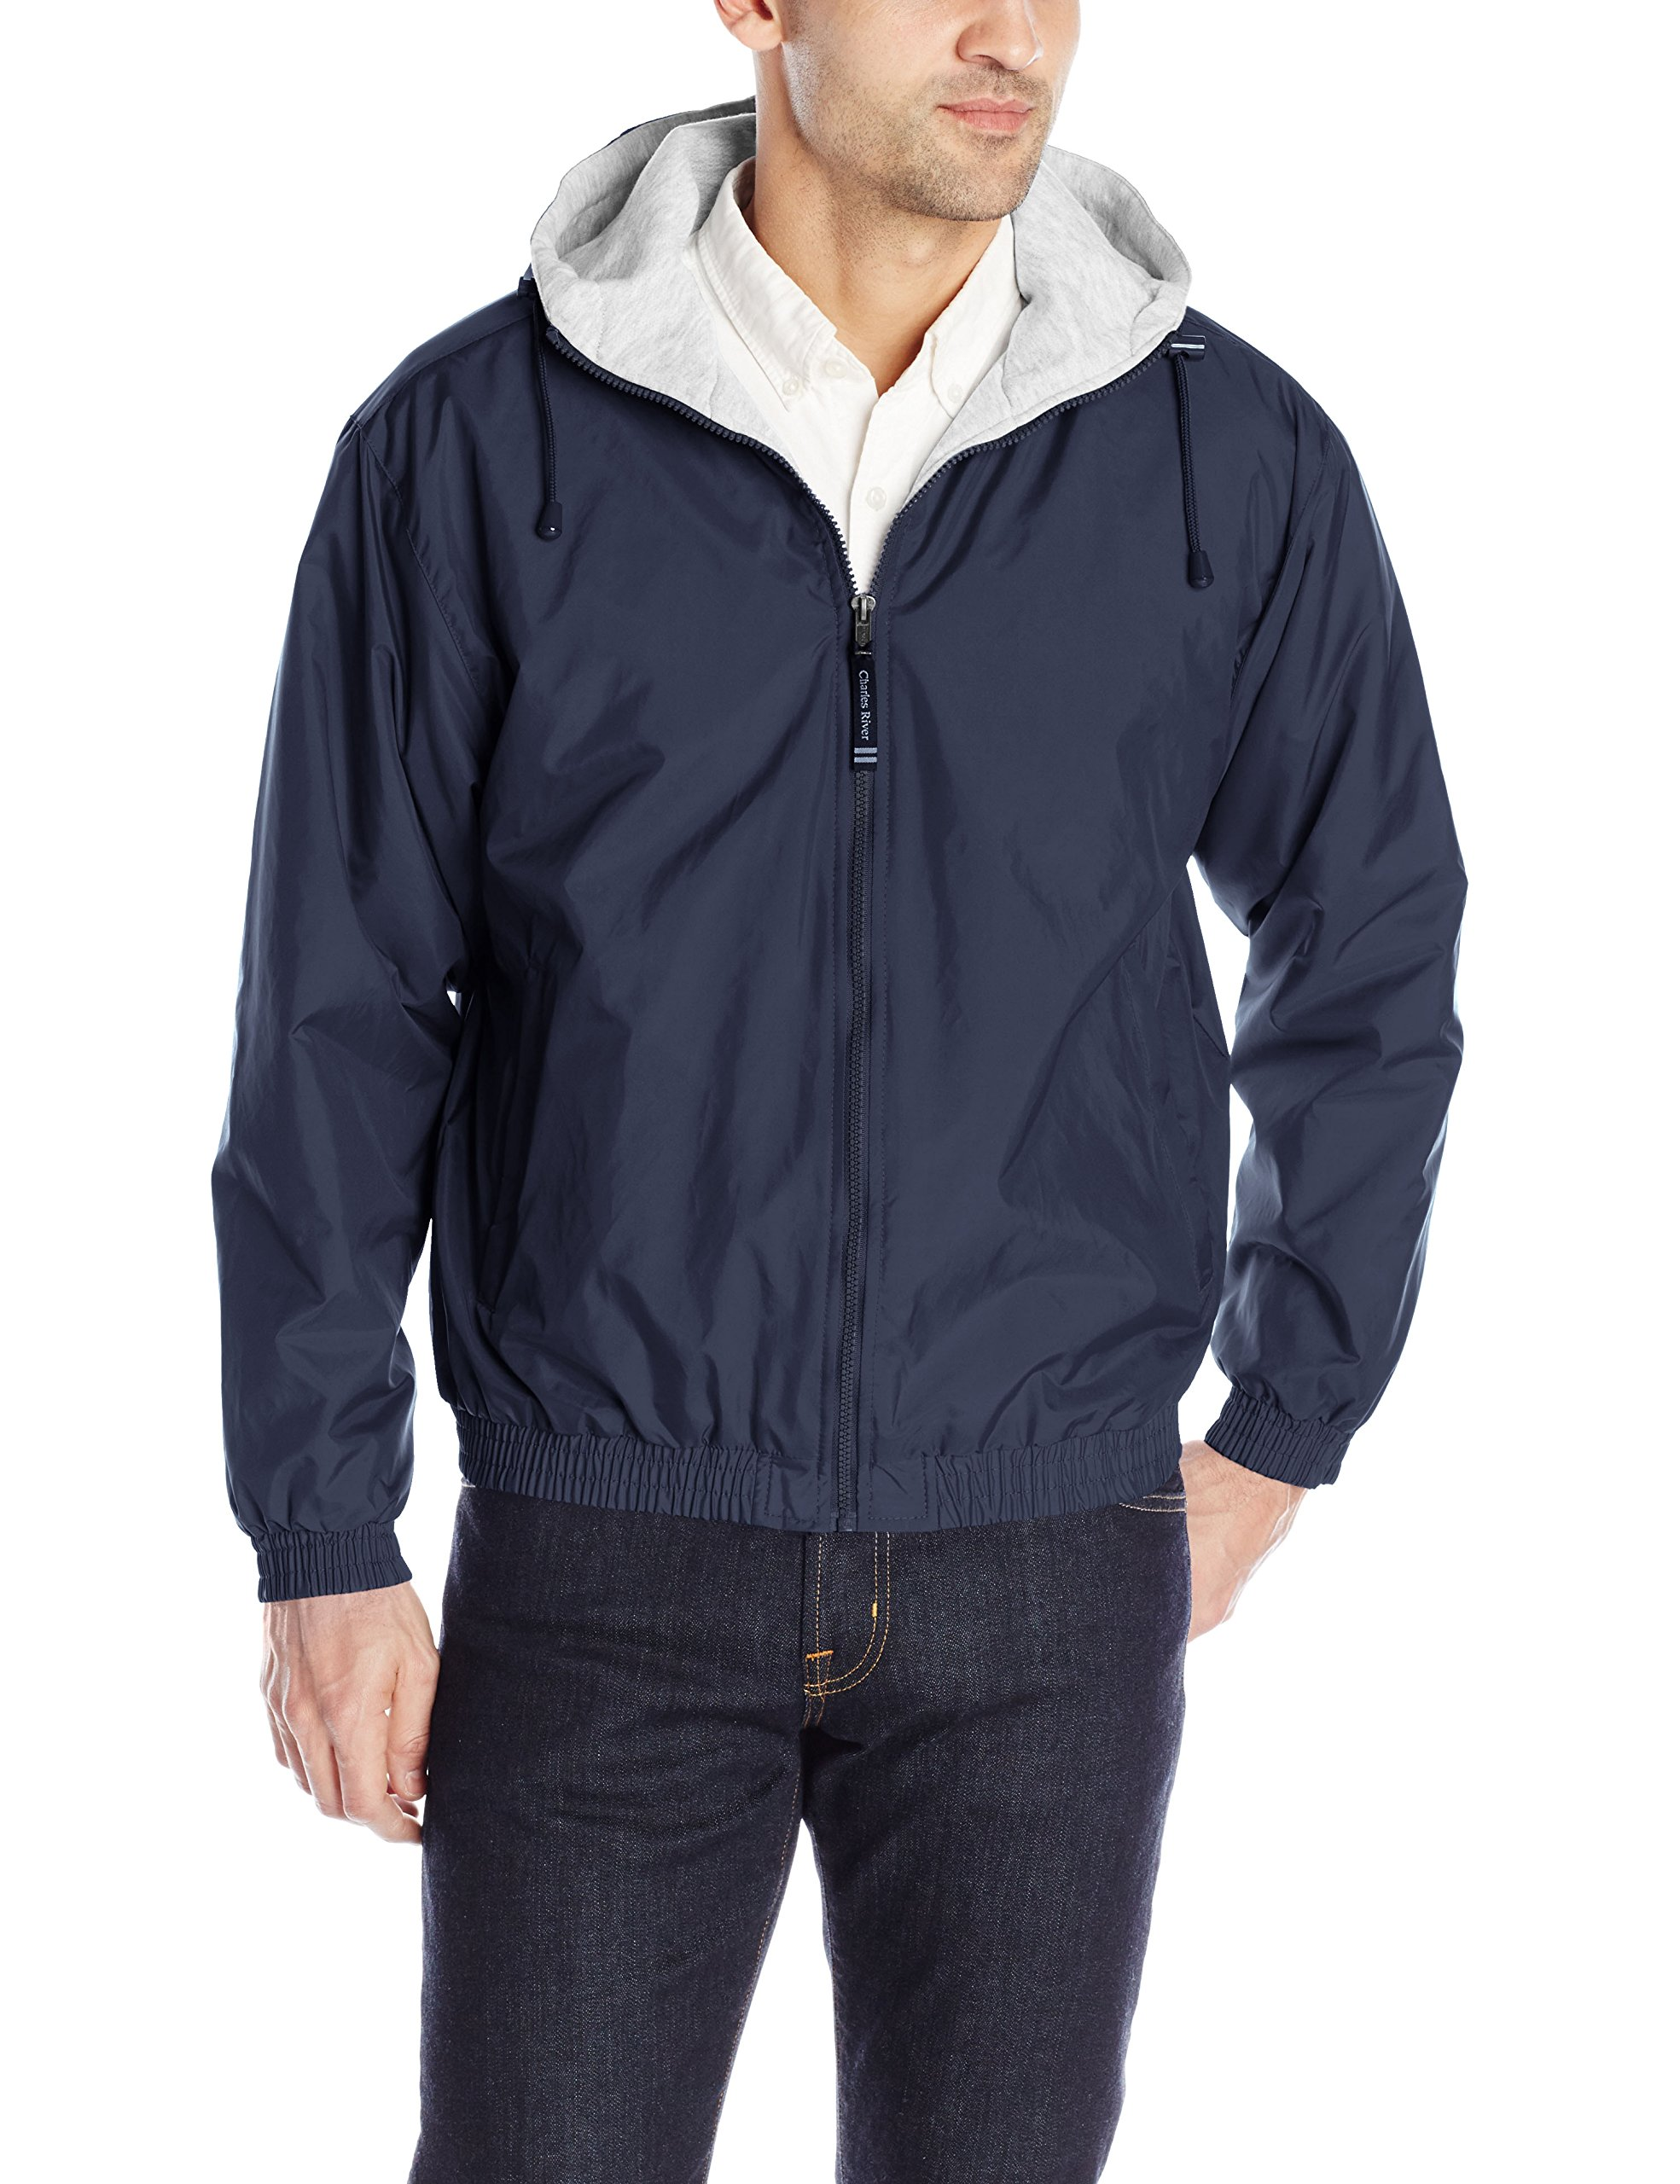 The ''Performer Collection'' Performer Nylon Jacket from Charles River Apparel,040 Navy,Adult Large by Charles River Apparel